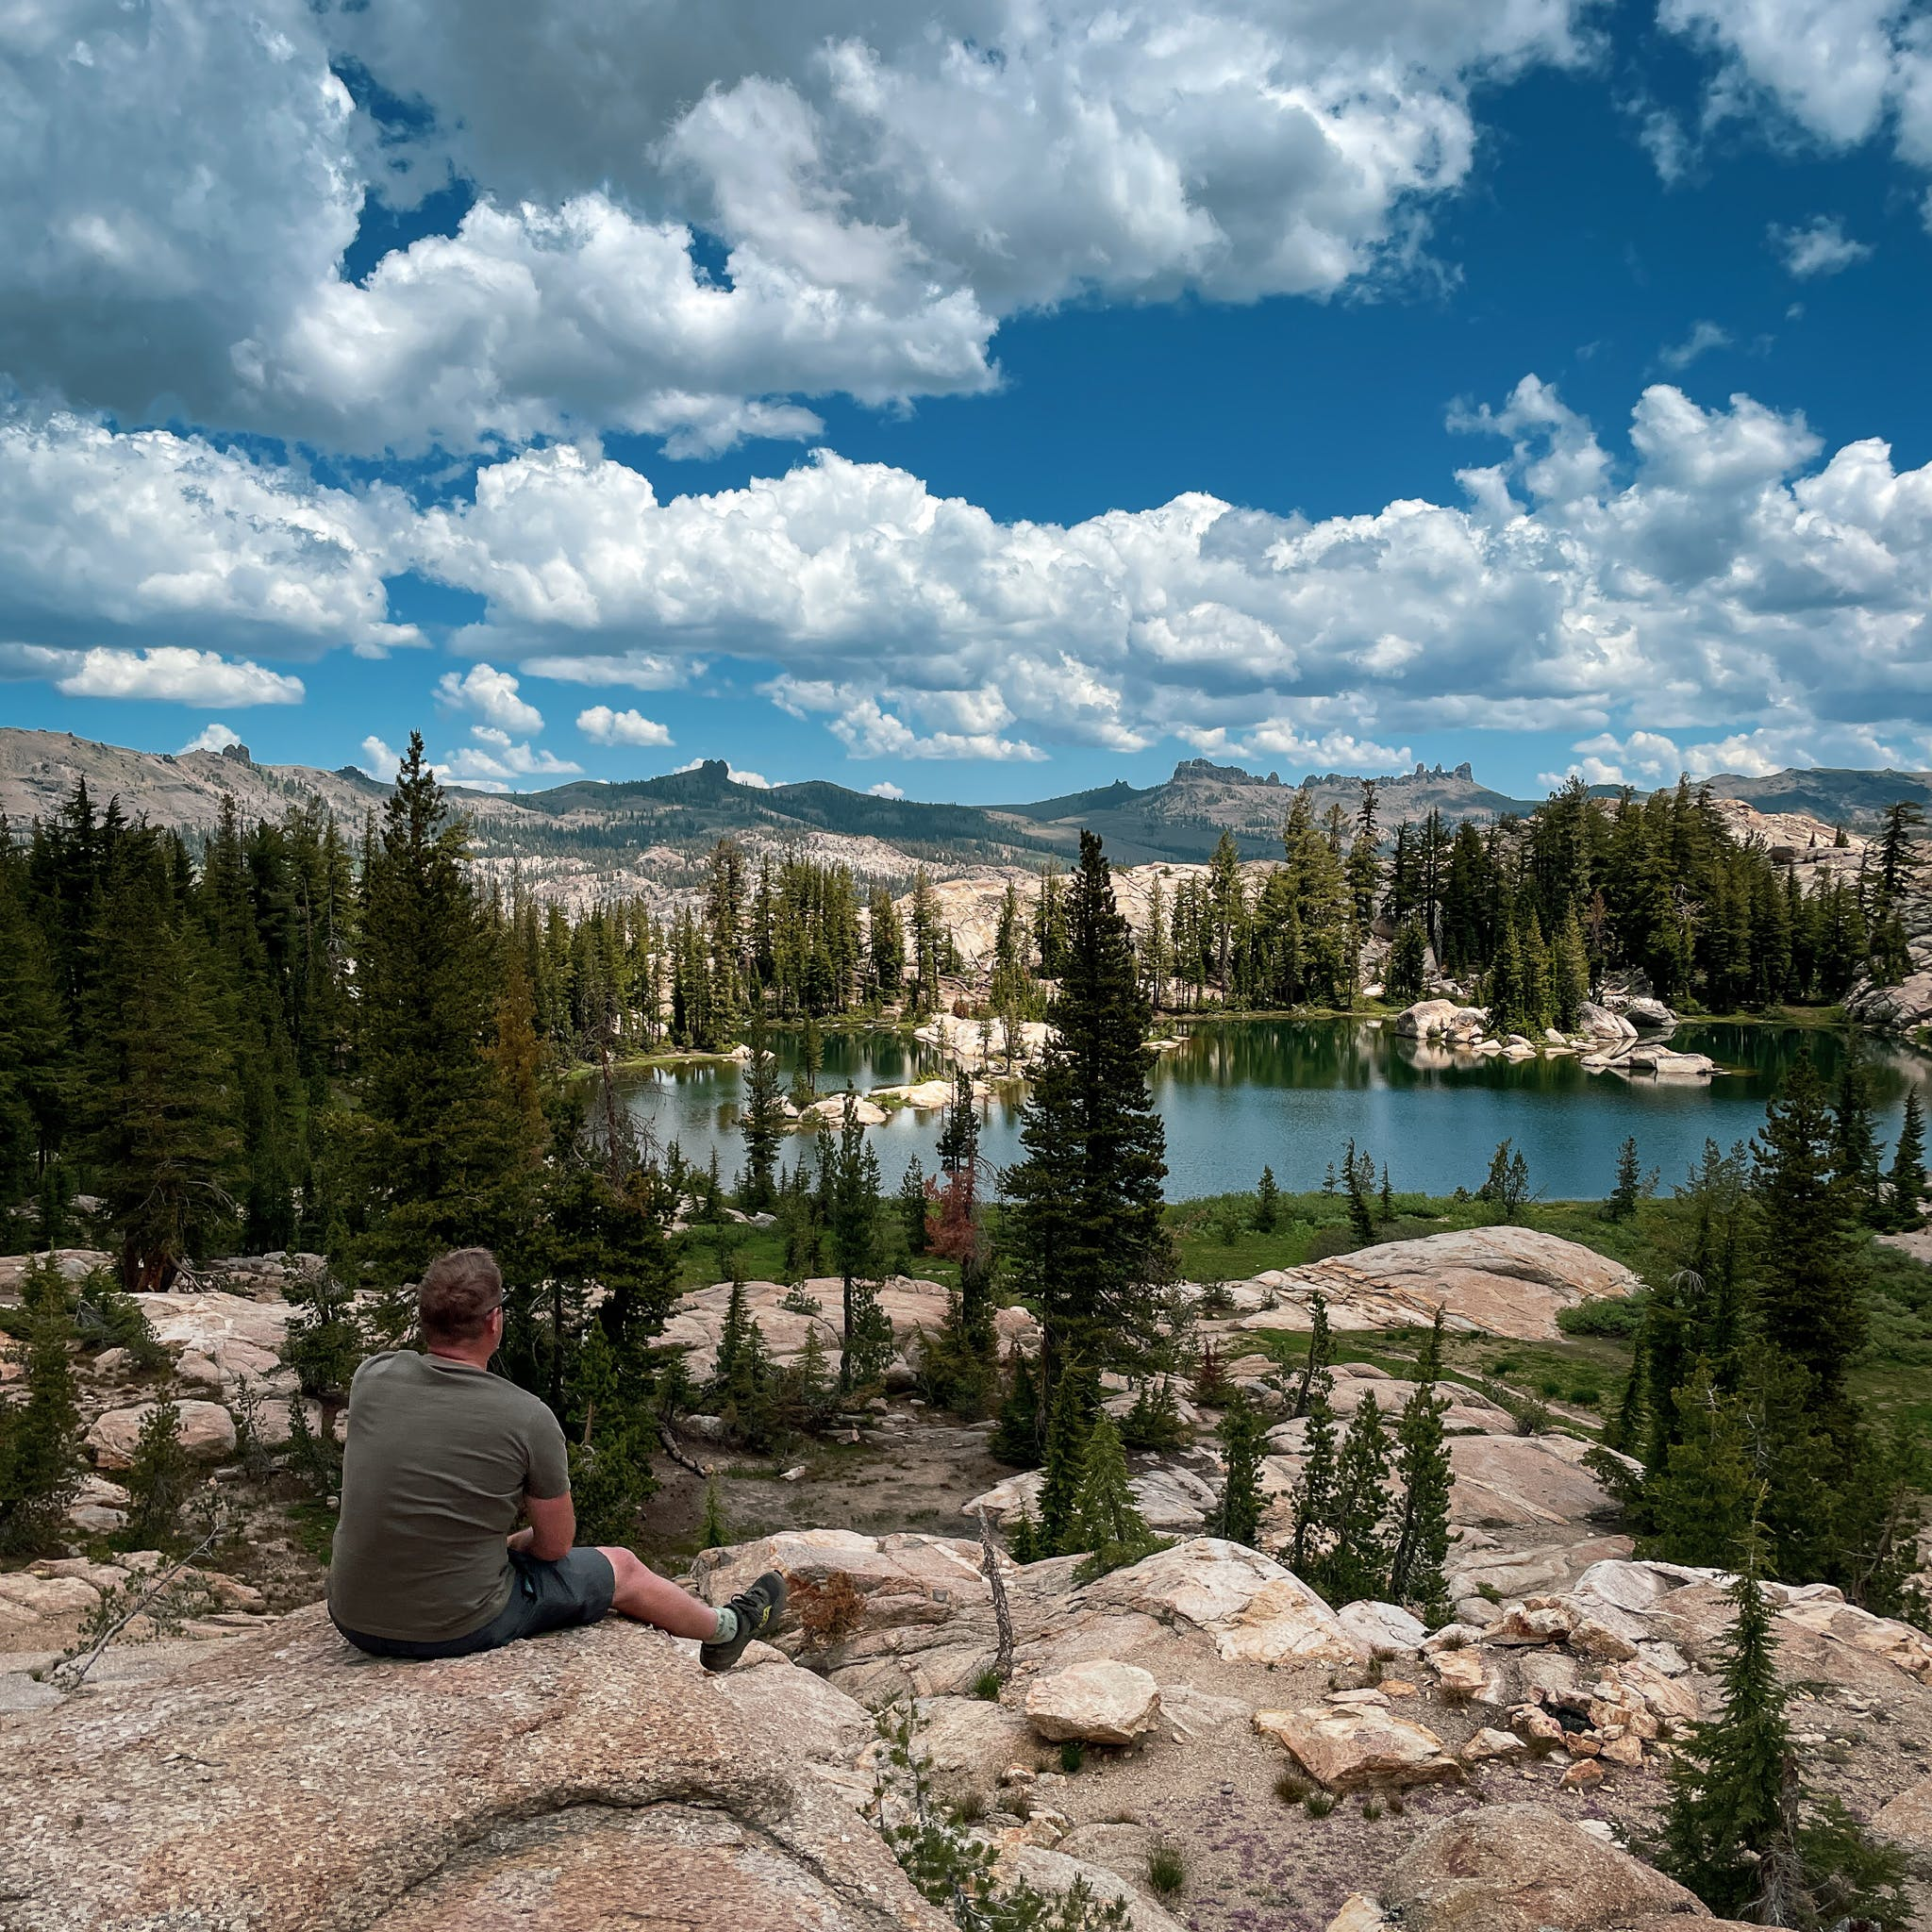 Lake view in the Emigrant Wilderness